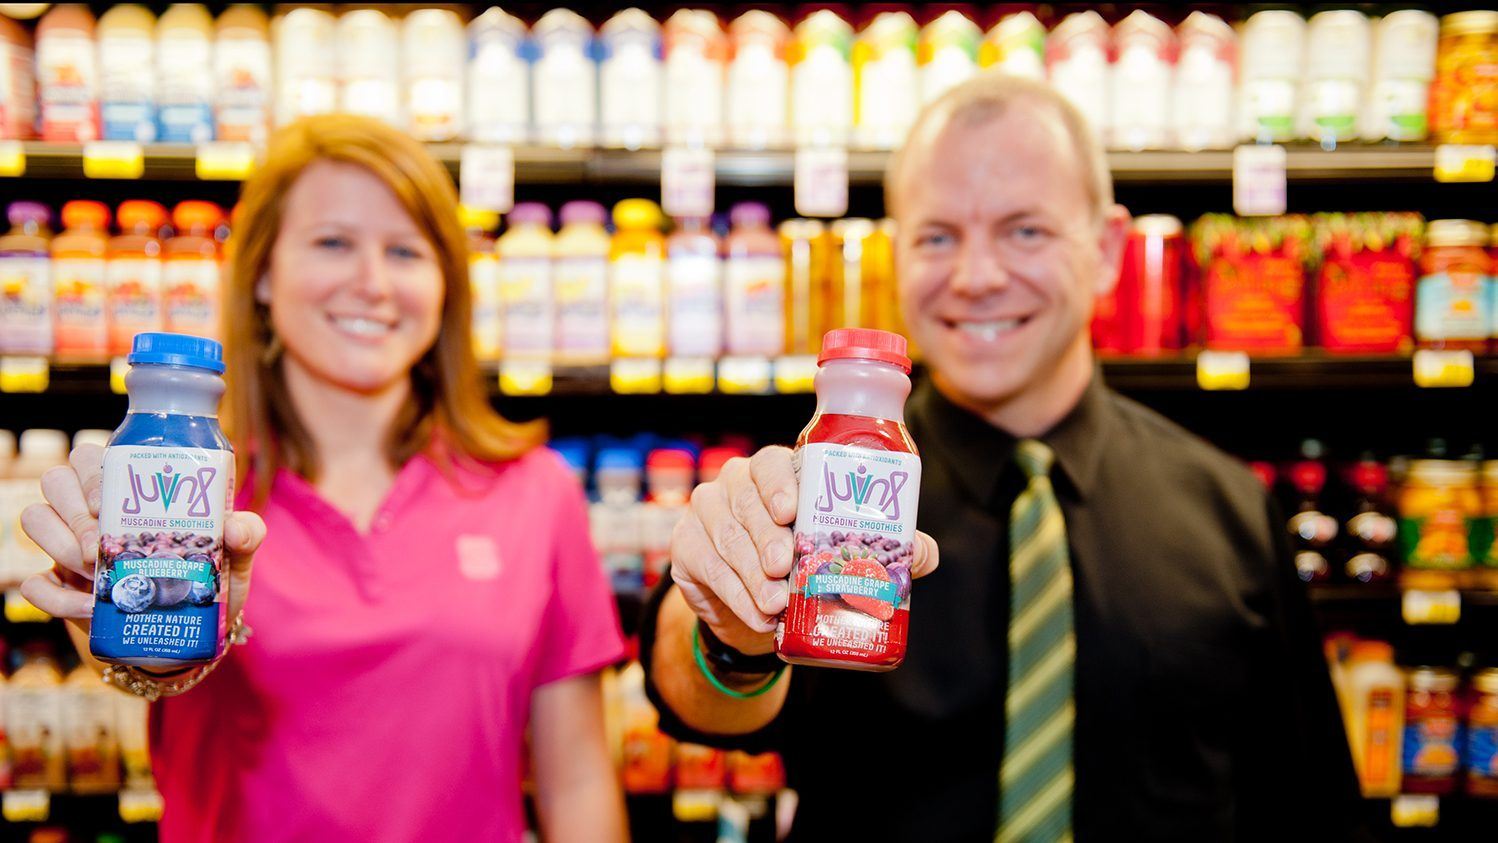 Student and professor holding juice bottles in a grocery store aisle